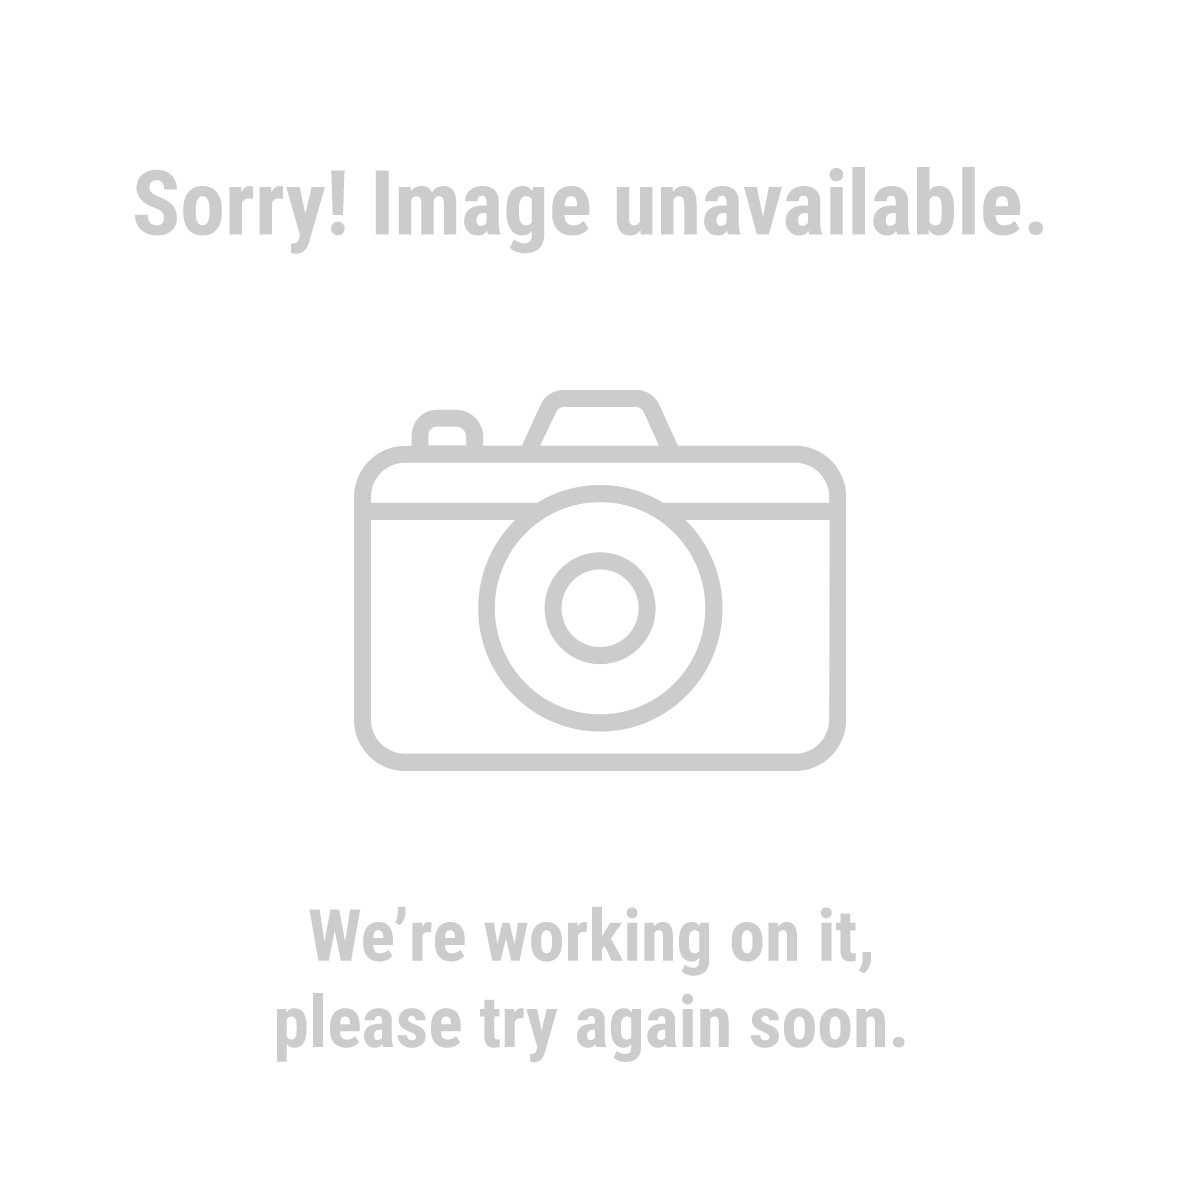 Storehouse 94375 40 Bin Organizer with Full Length Drawer